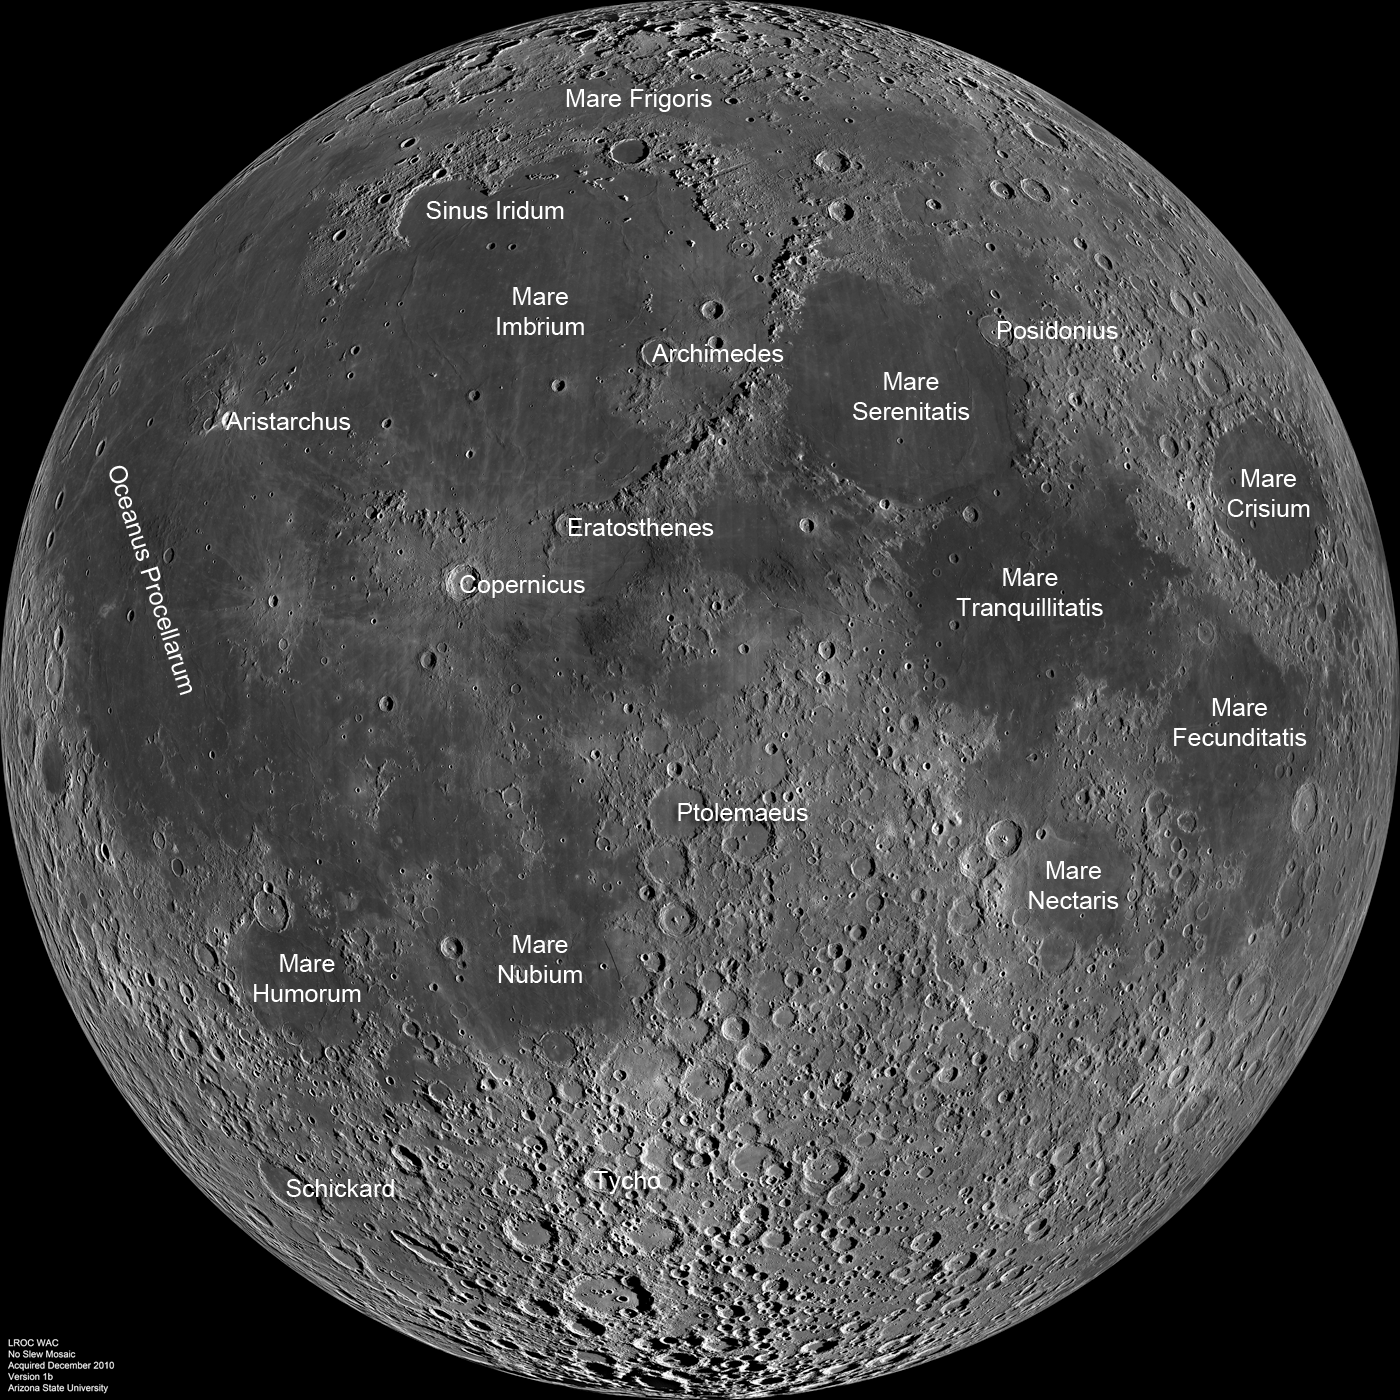 Moon, nearside, with named major areas.  Source: http://scienceblogs.com/startswithabang/files/2011/03/lroc_wac_nearside_noslew_anot.png